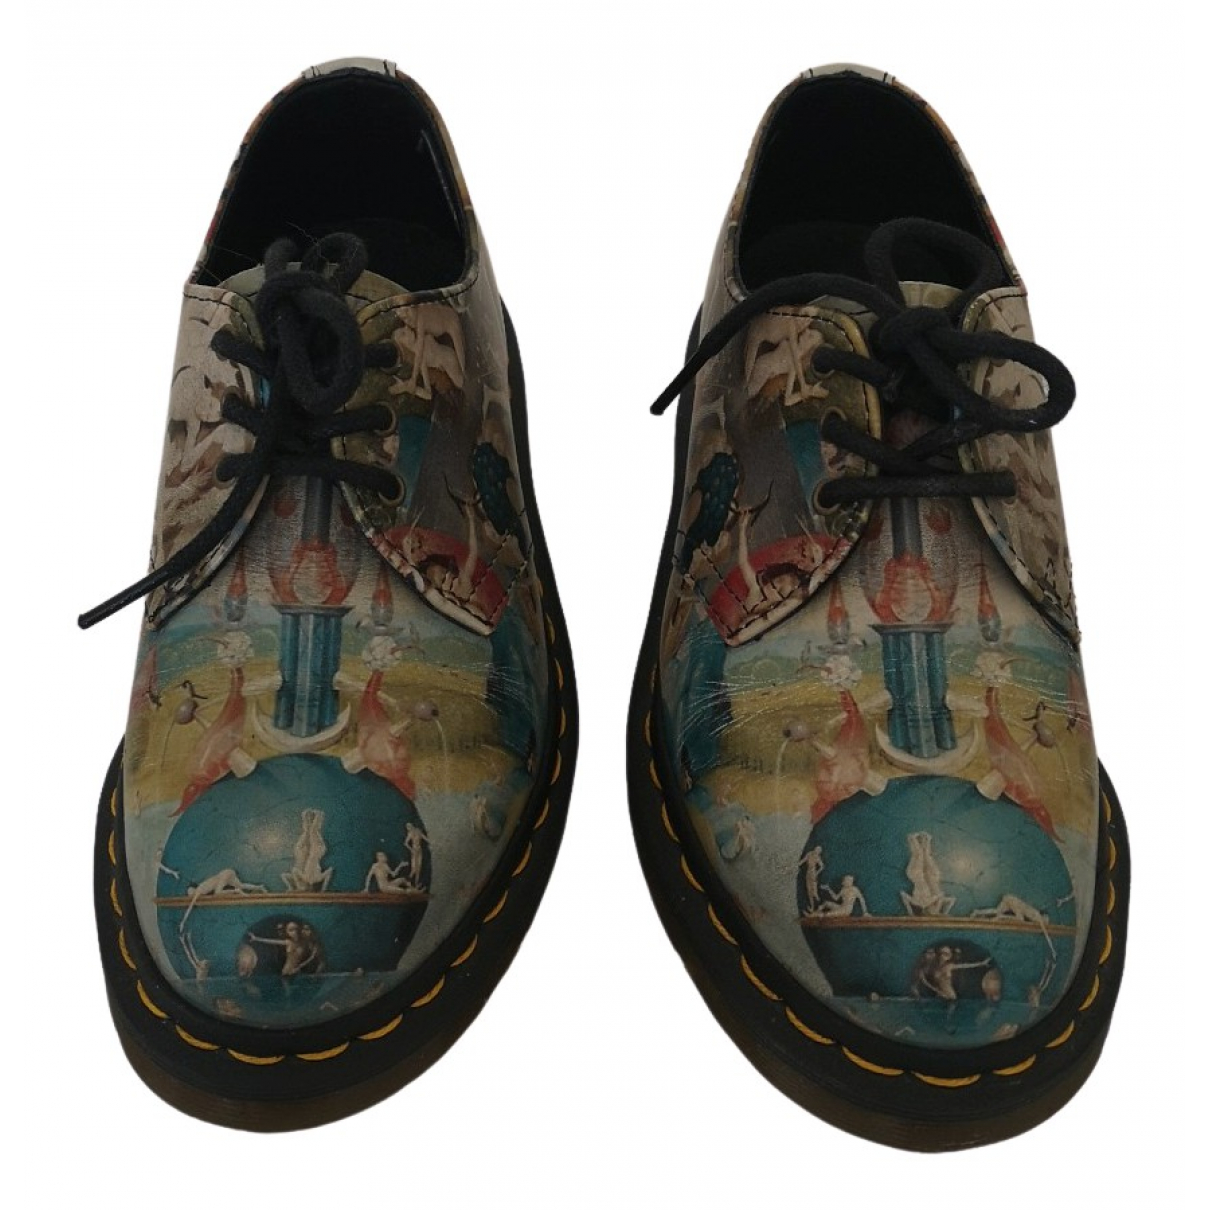 Dr. Martens 1461 (3 eye) Leather Lace ups for Women 36 EU